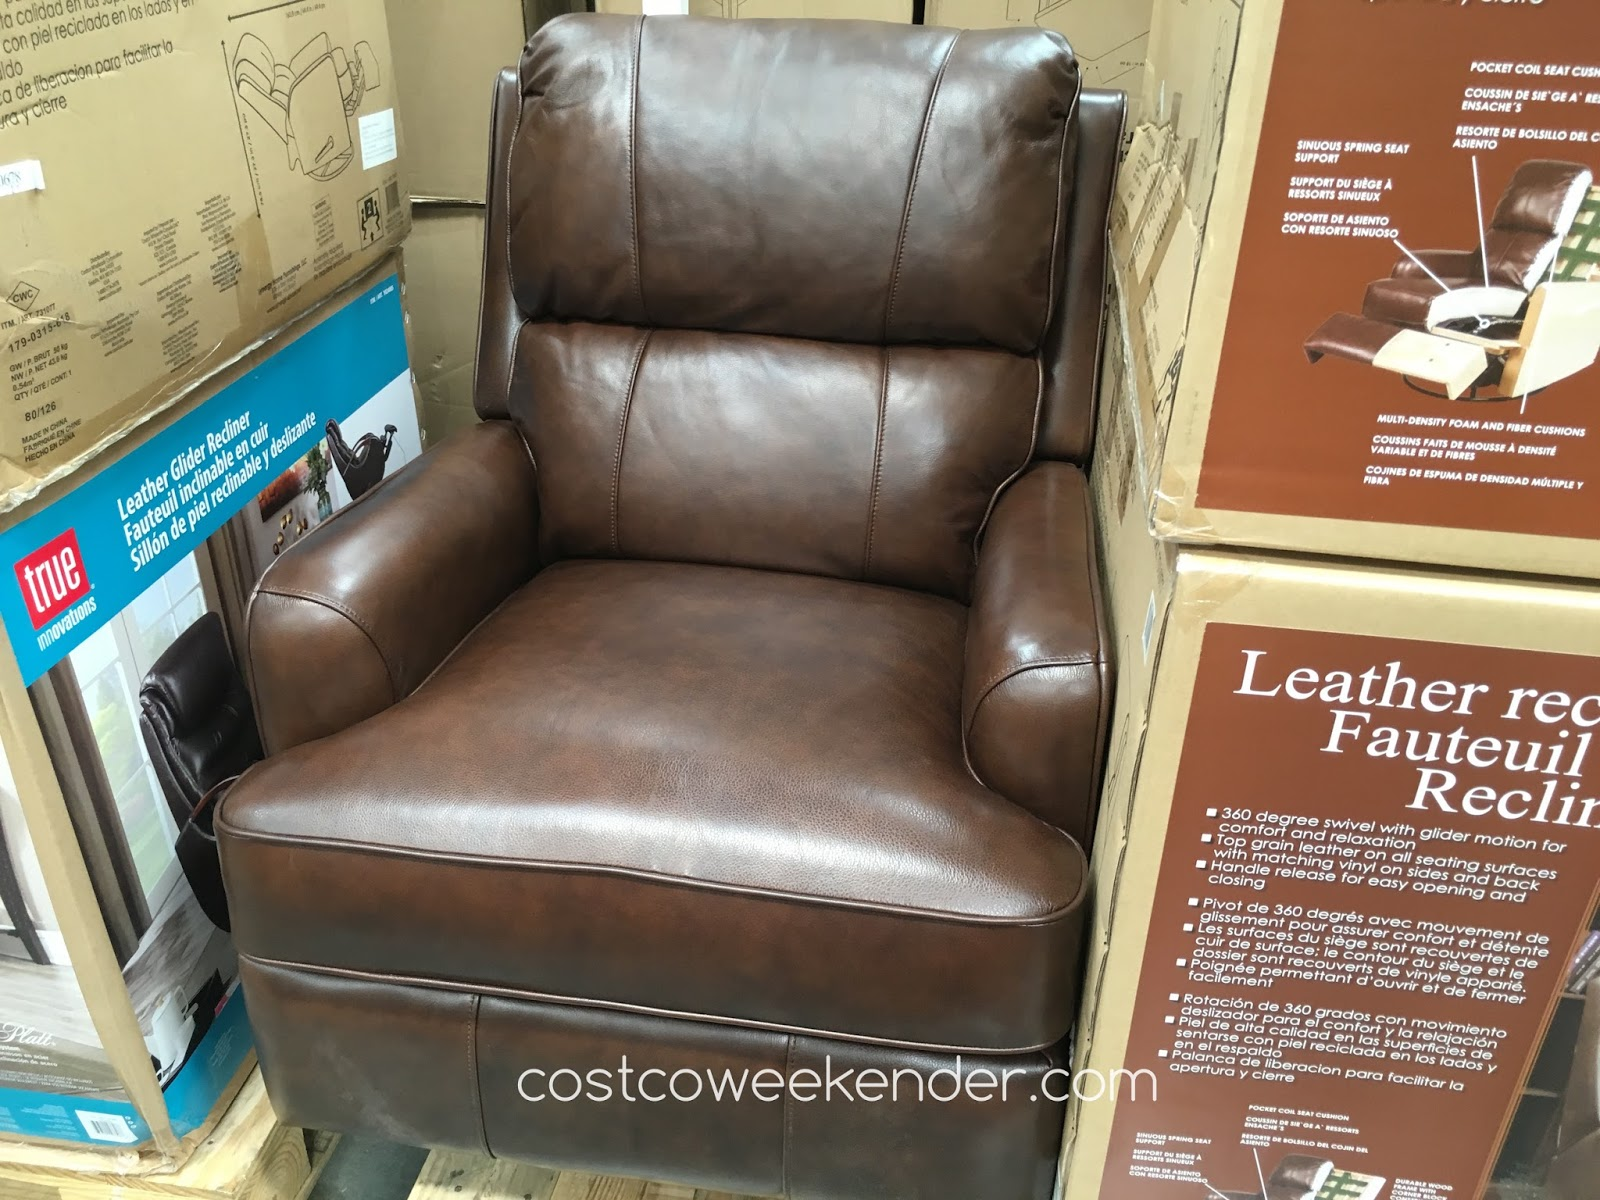 Synergy Leather Recliner - The perfect chair for any room & Synergy Leather Recliner Chair | Costco Weekender islam-shia.org